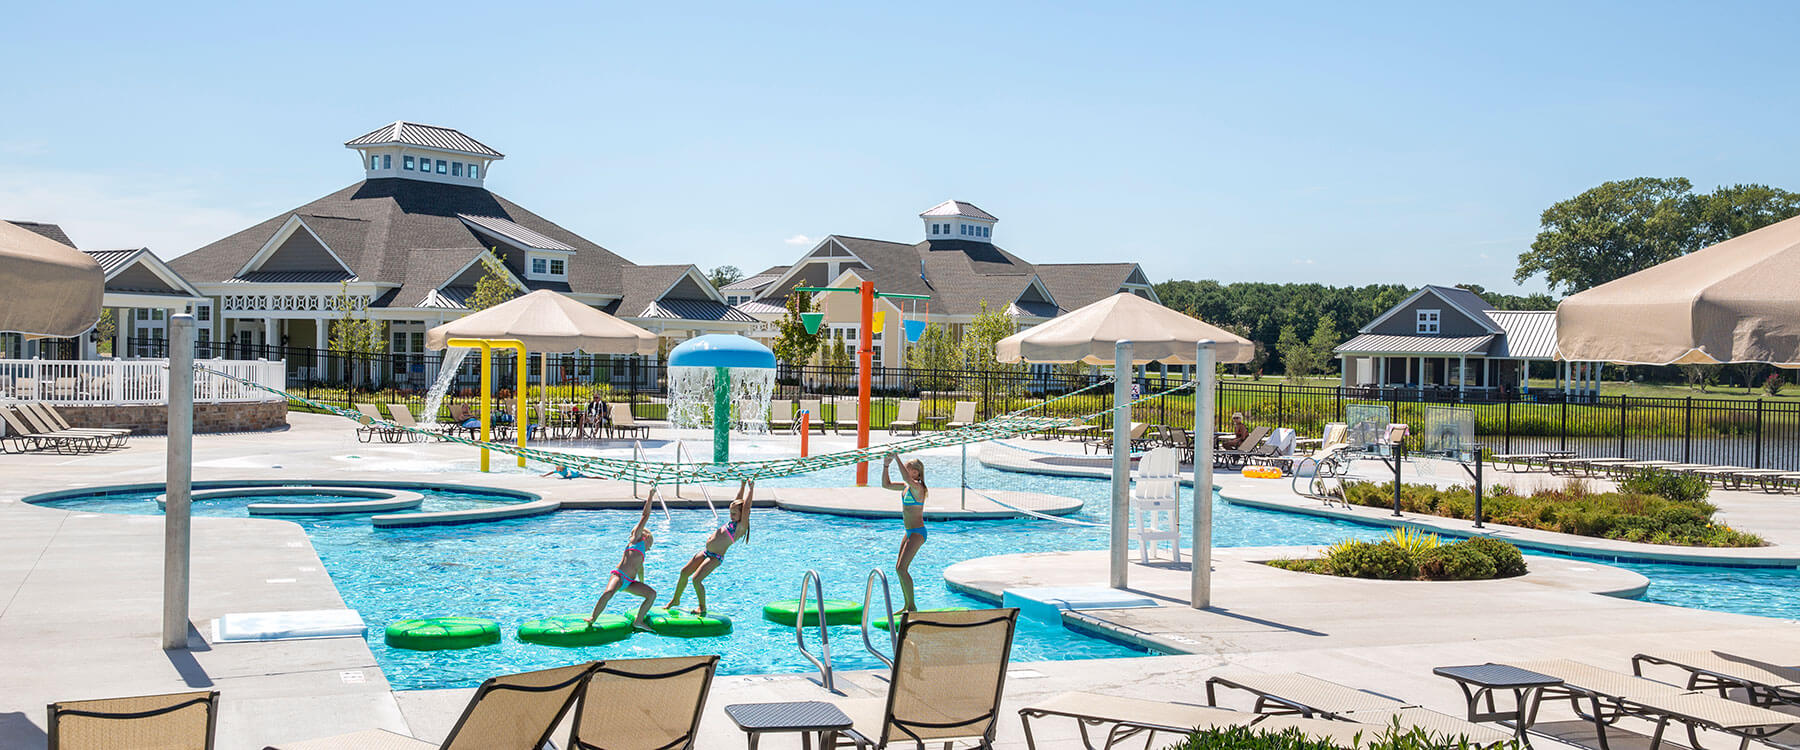 Millville by the Sea Swimming Pools